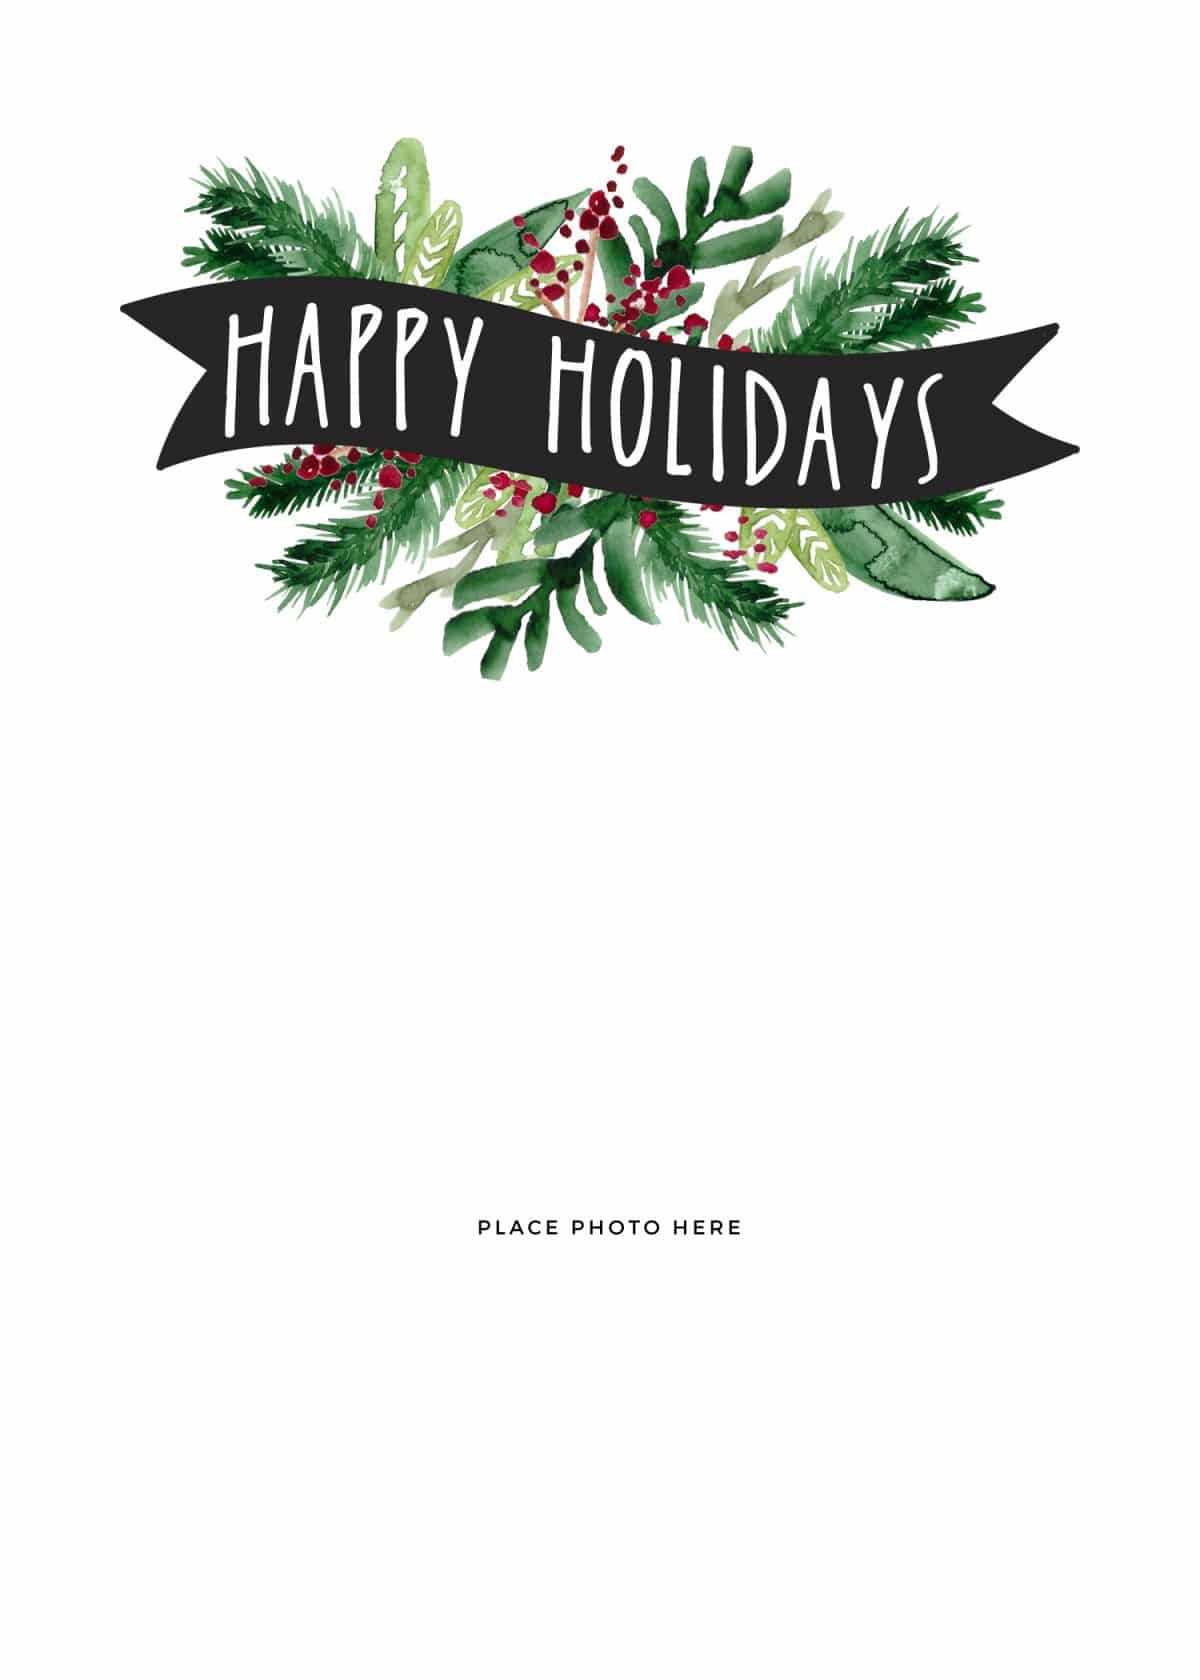 Make Your Own Photo Christmas Cards (For Free!) - Somewhat Within Print Your Own Christmas Cards Templates